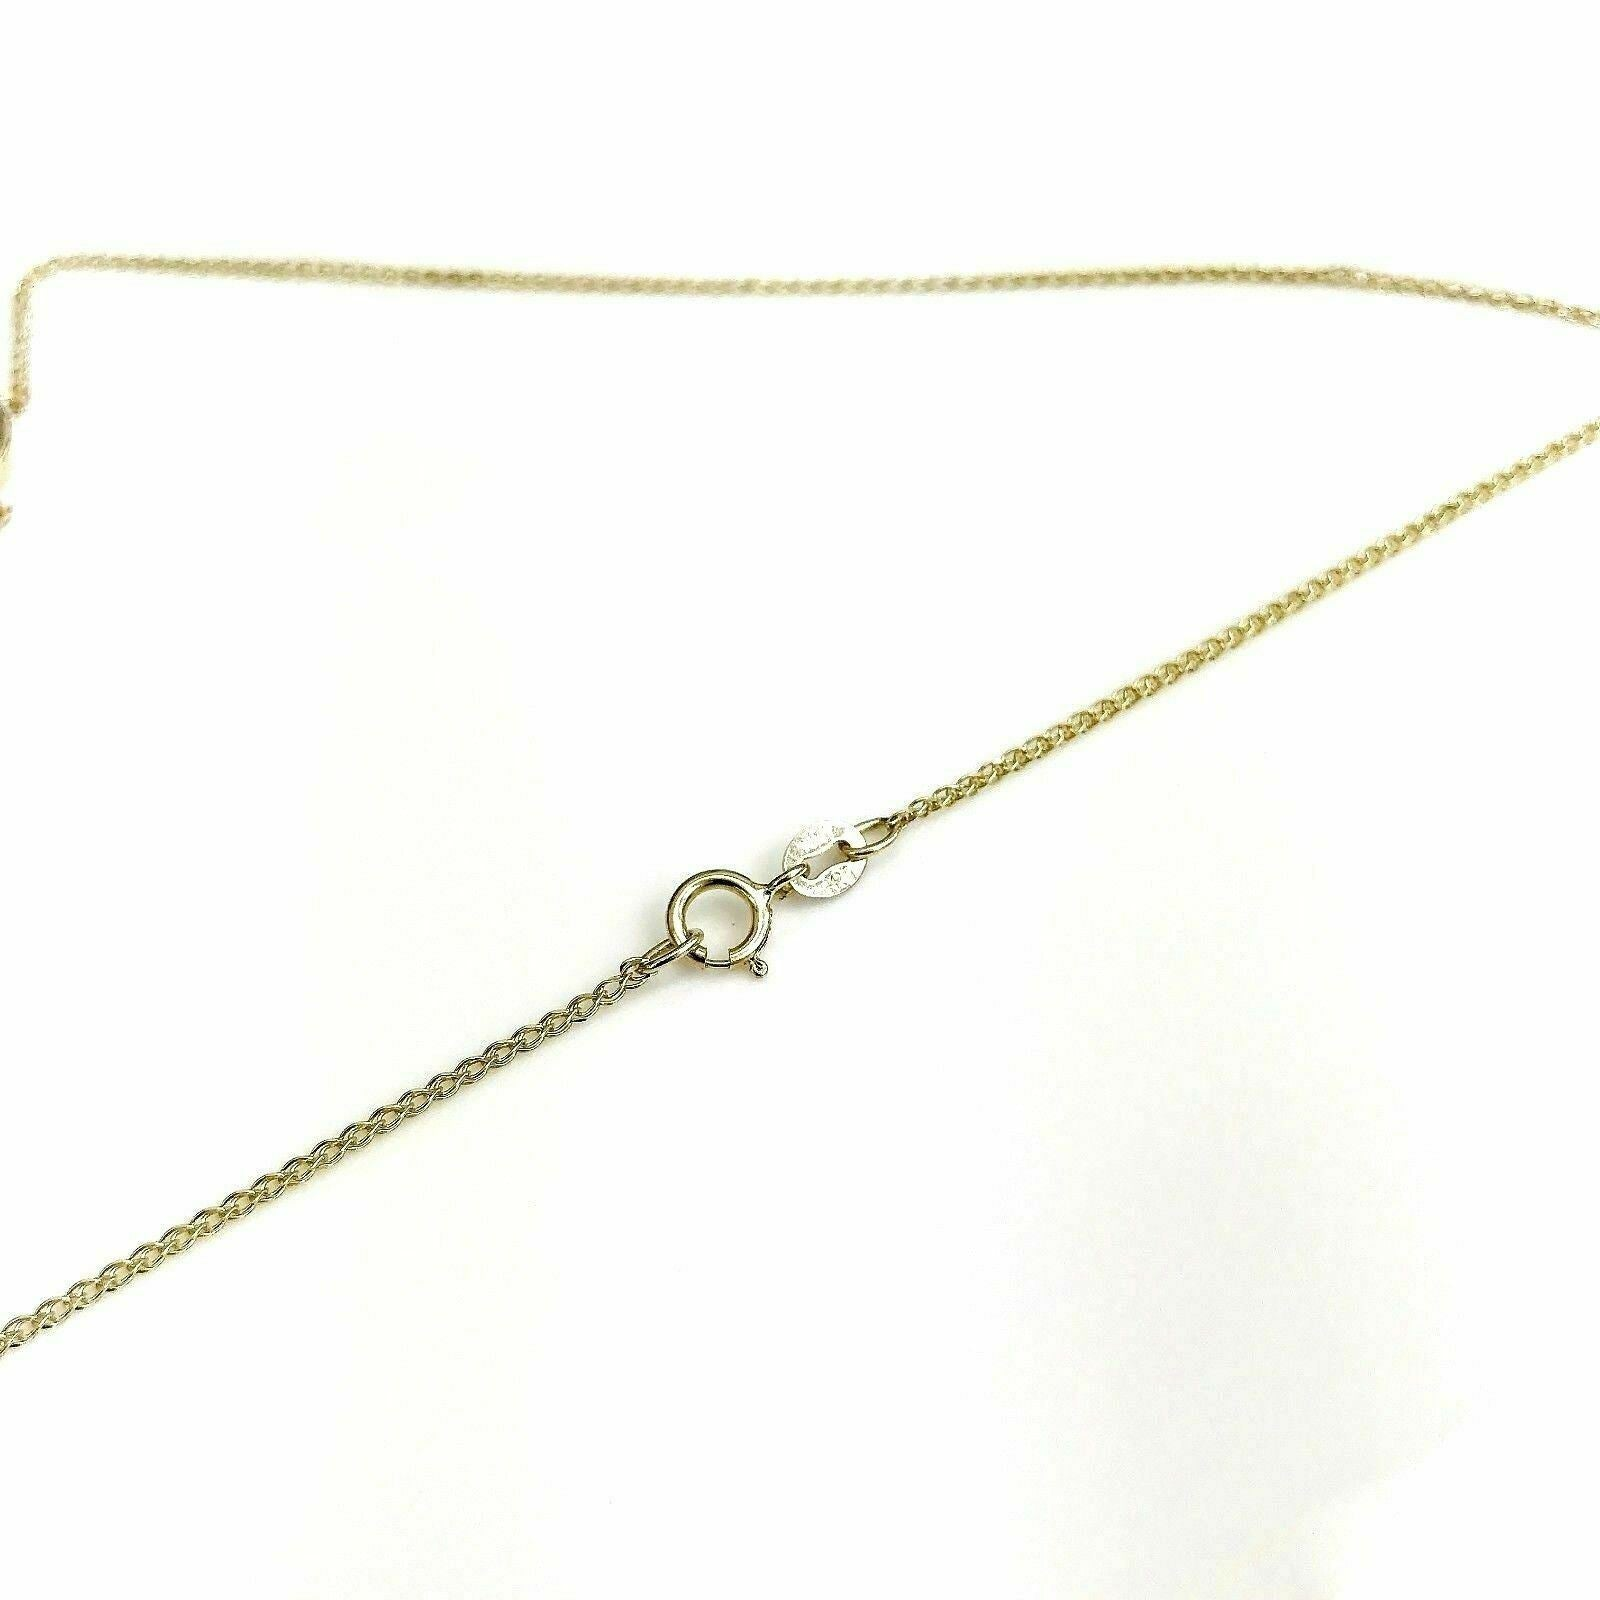 0.55 Carat 14K Marquise Diamond Solitaire Pendant with 14K Yellow Gold Chain